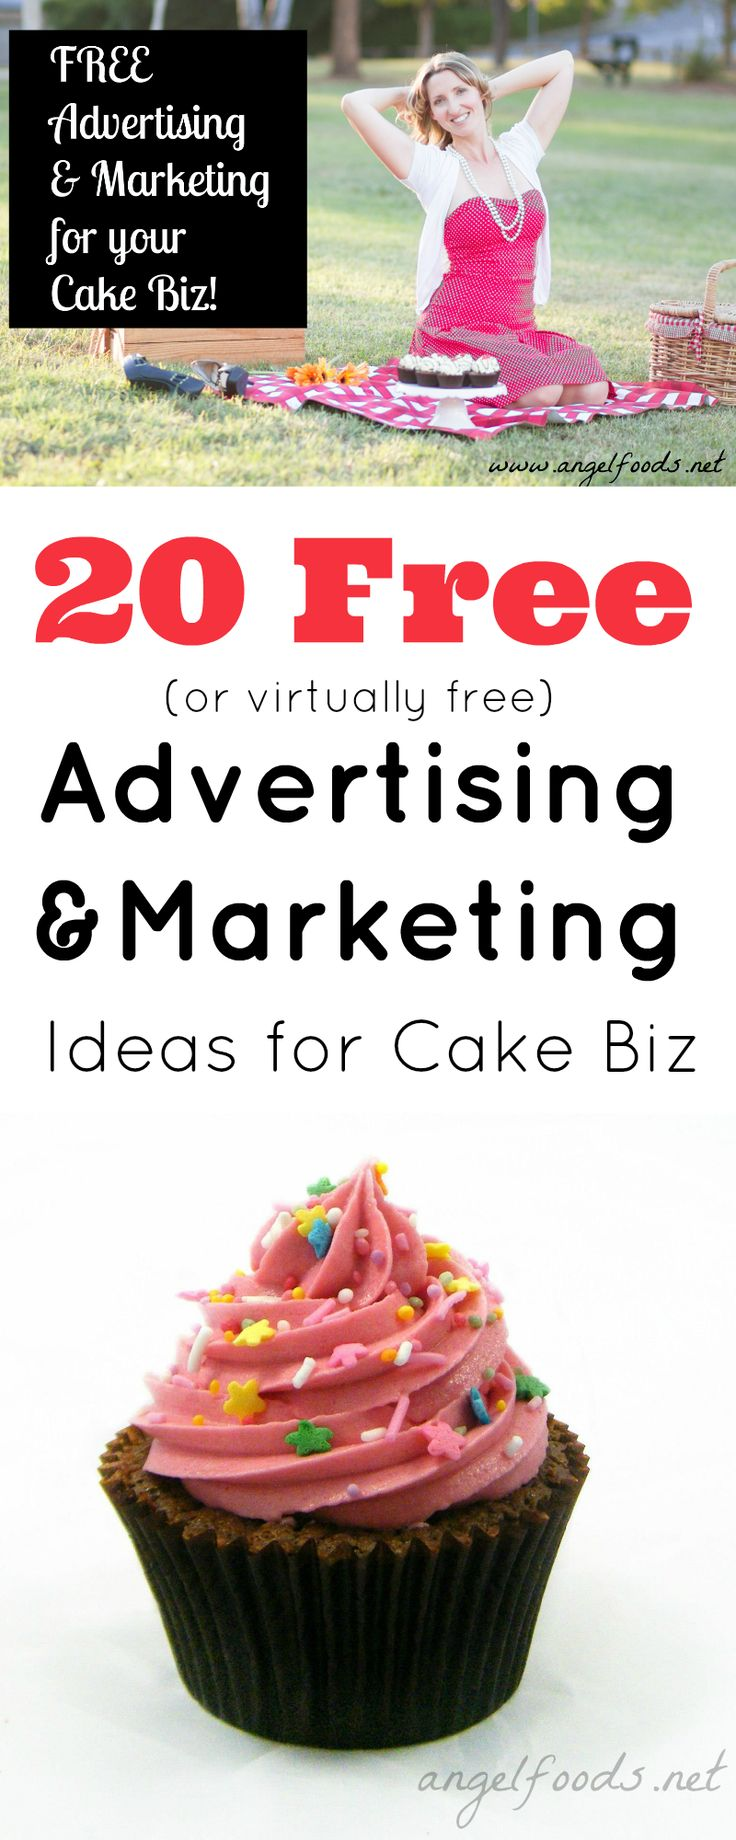 20 Free Advertising & Marketing Ideas for a Cake Business | Free Advertising and Marketing, How to Get More Bang For Less Buck! You want to advertise but don't know where and are on a budget. I have 20 free ideas for ... | http://angelfoods.net/free-advertising-marketing-for-a-cake-business/